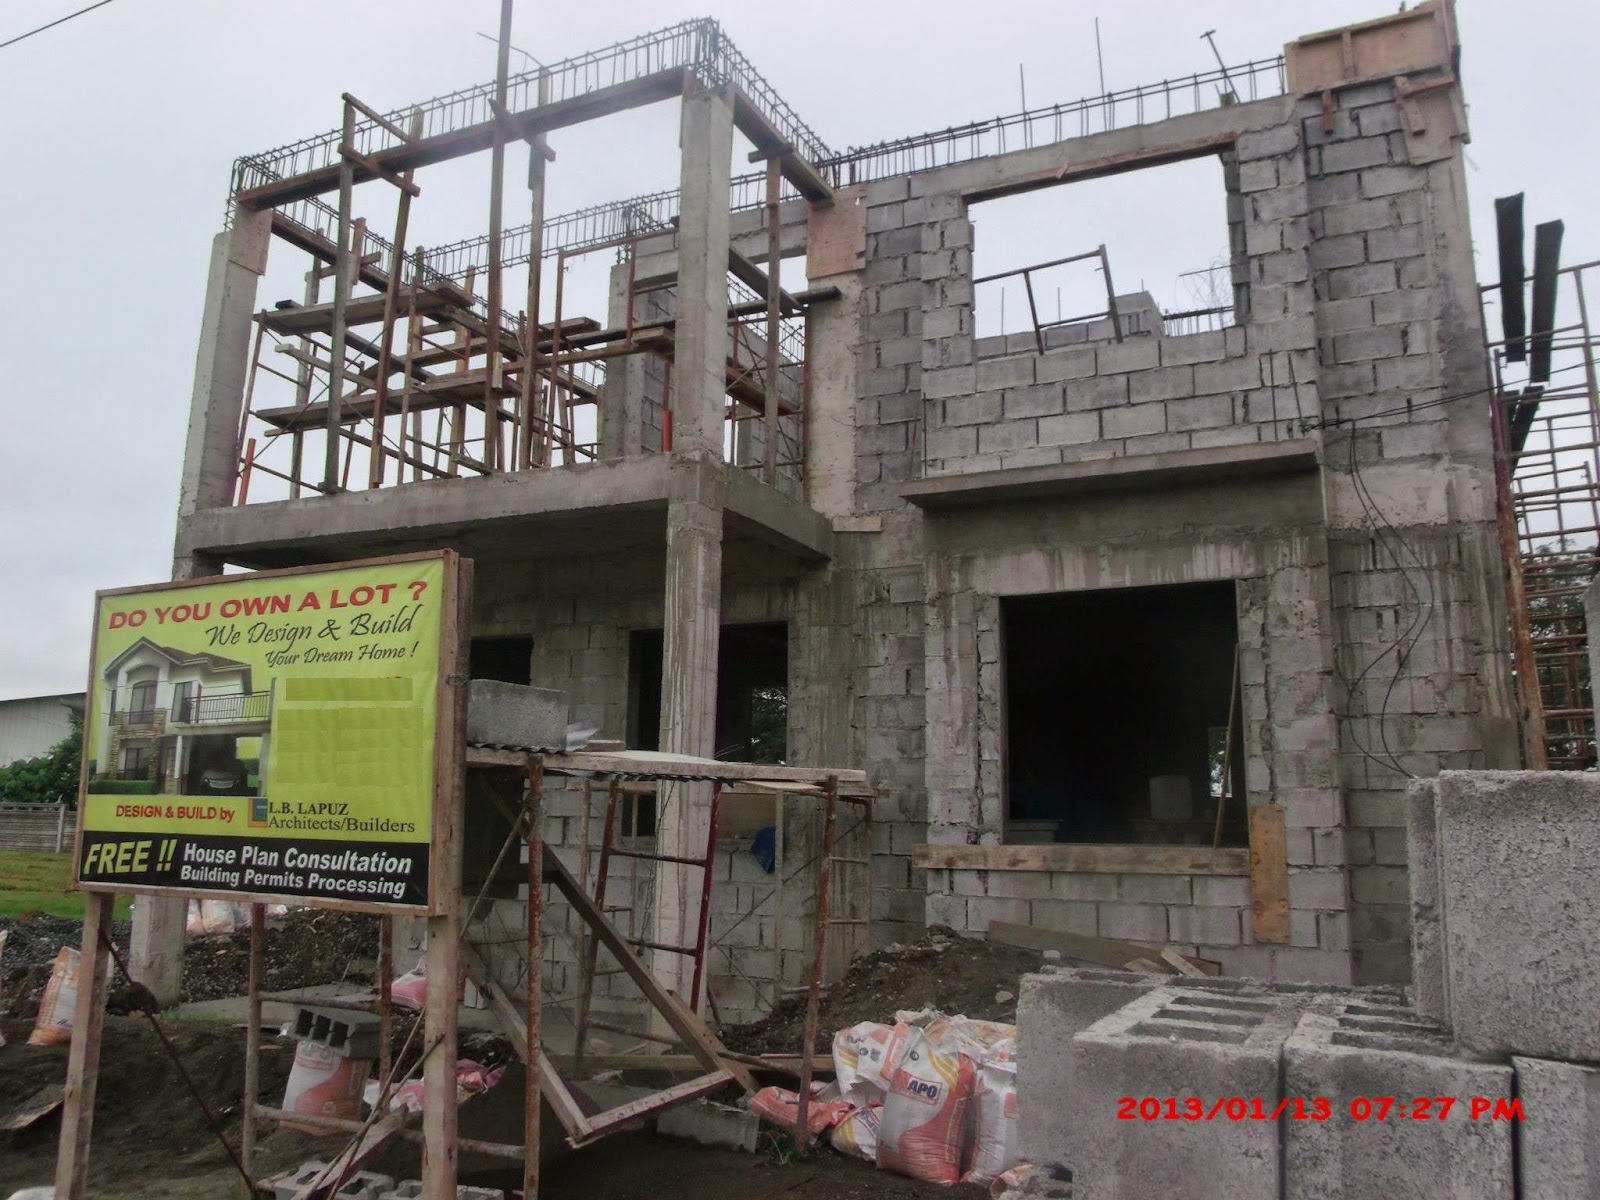 Savannah trails house construction project in oton iloilo philippines phase 3 lb lapuz - Home construction designs ...